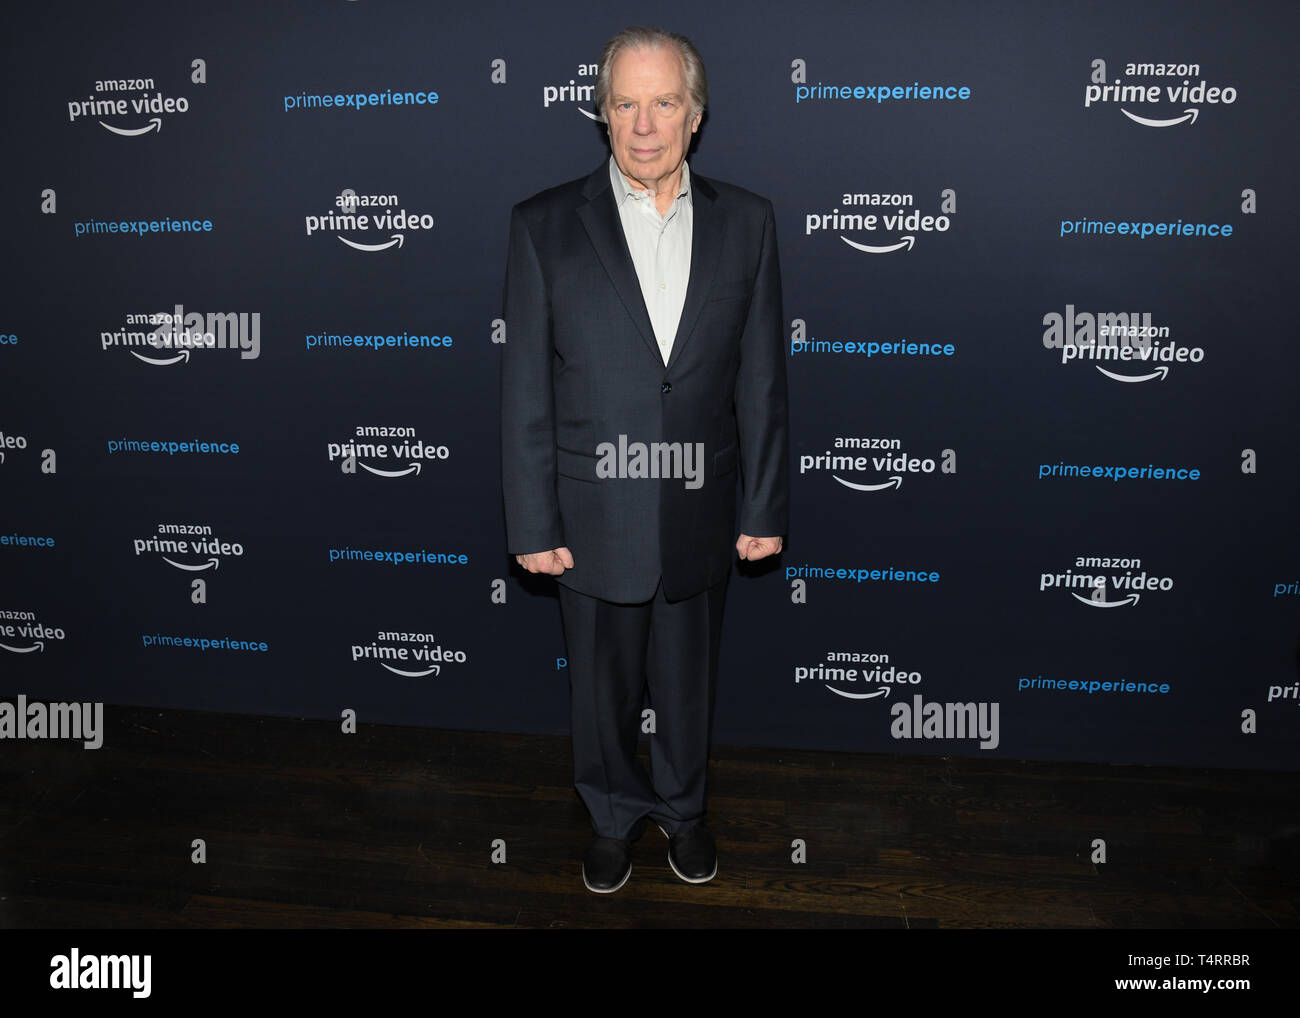 April 17, 2019 - Hollywood, California, USA - Actor MICHAEL MCKEAN attends  at the For Your Consideration Screening of Amazon Studios' 'Good Omens' at The Hollywood Athletic Club in Los Angeles, California. (Credit Image: © Billy Bennight/ZUMA Wire) - Stock Image